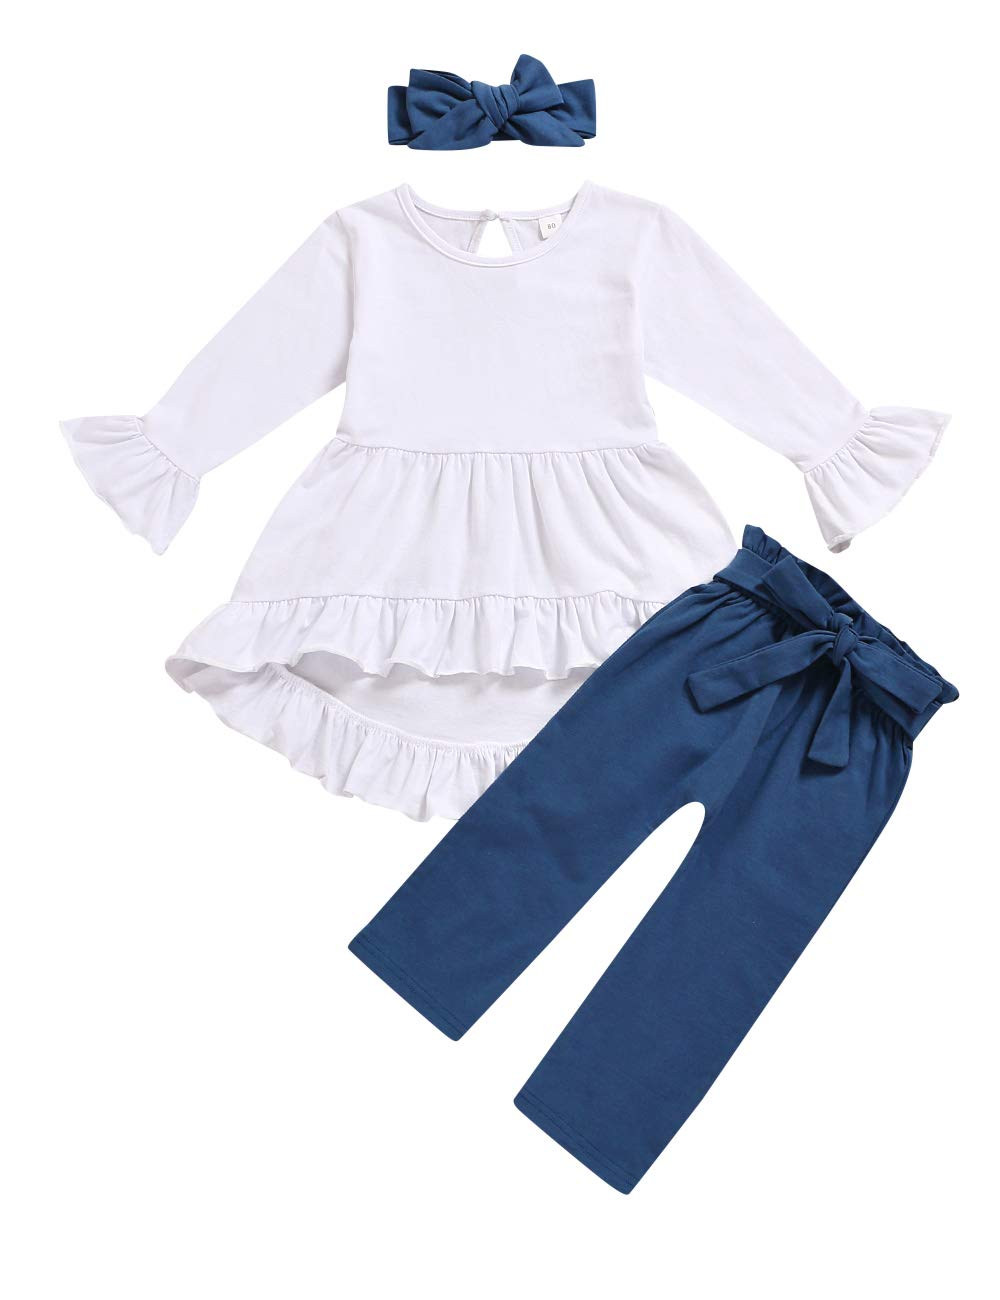 Toddler Girl Clothes Ruffle Flare Tunic Top Long Sleeve Shirt Pants and Headband Fall Winter Outfit Set